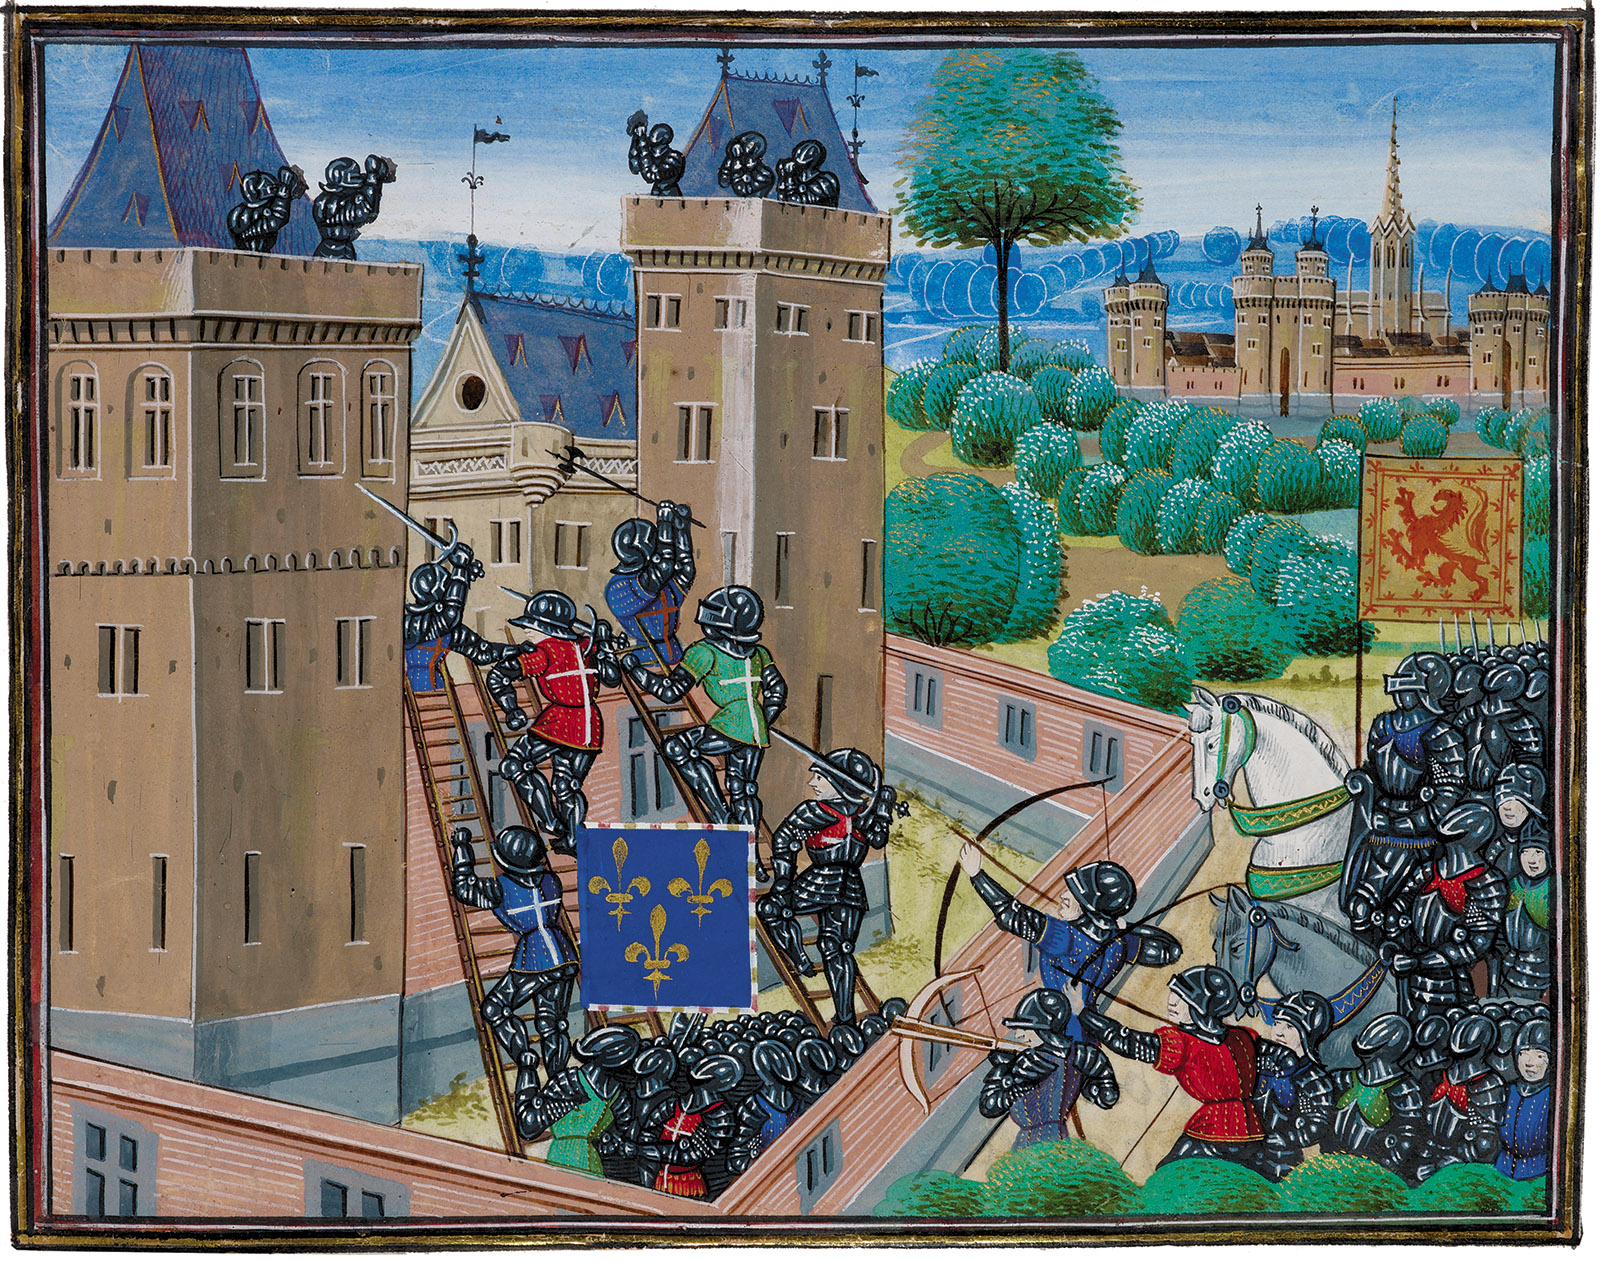 Scottish knights laying siege to an English castle in the border country; from Jean Froissart's Chronicles of France and England, fourteenth century